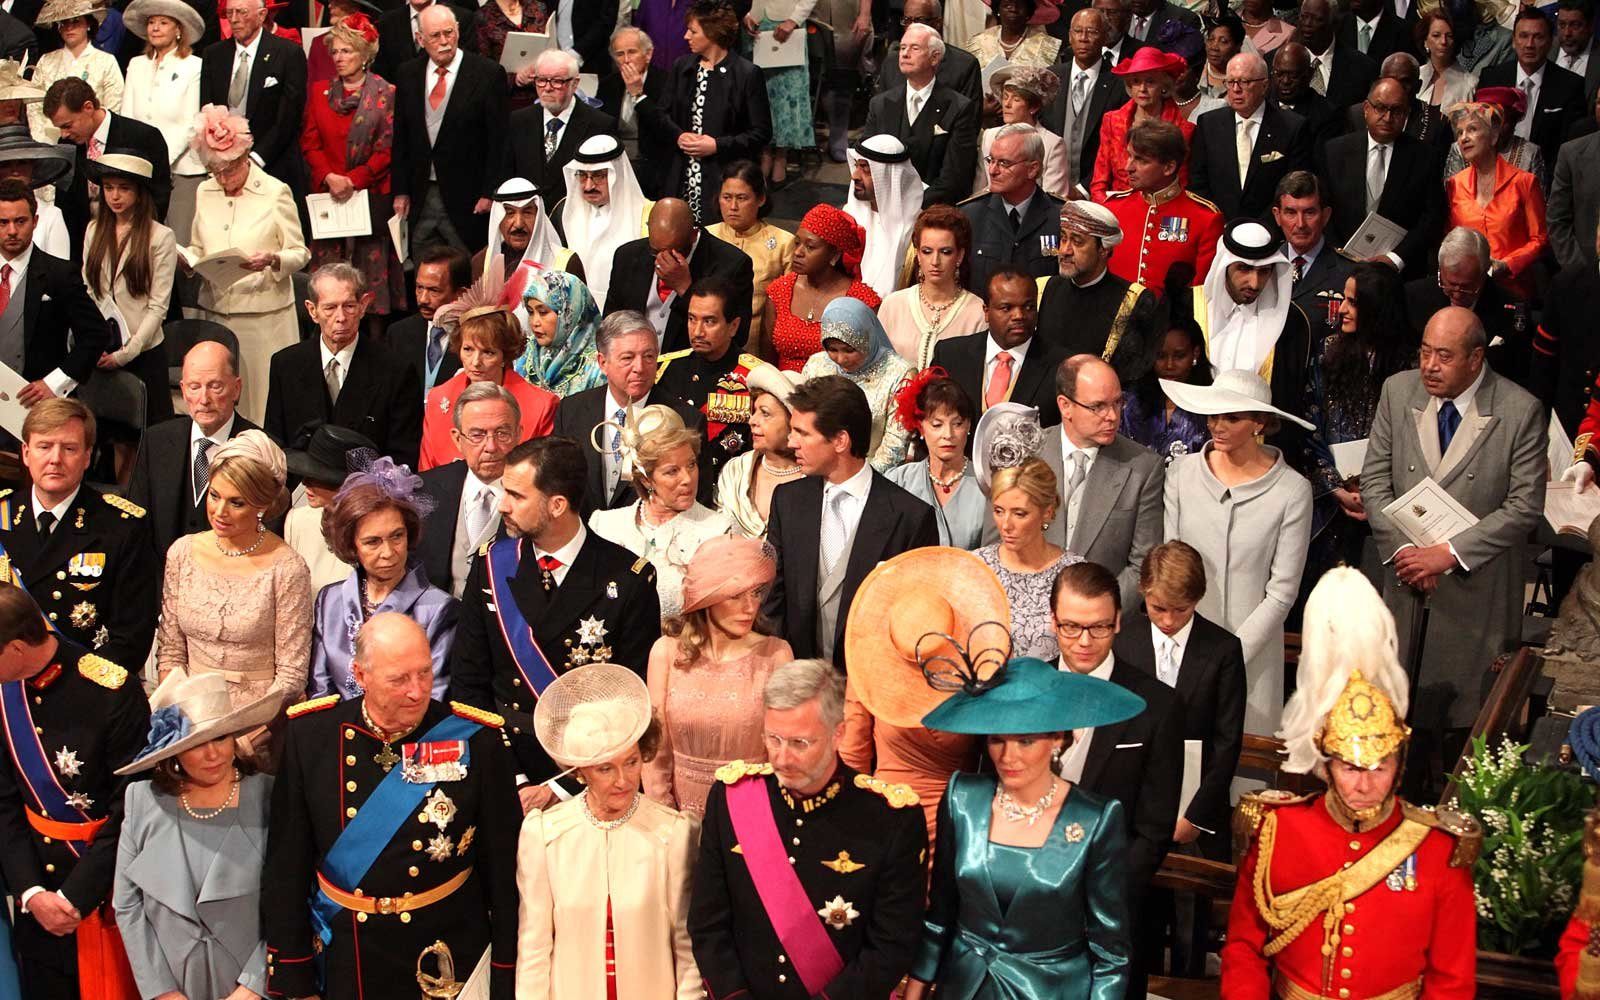 Wedding Guests at Prince William's Wedding to Kate Middleton